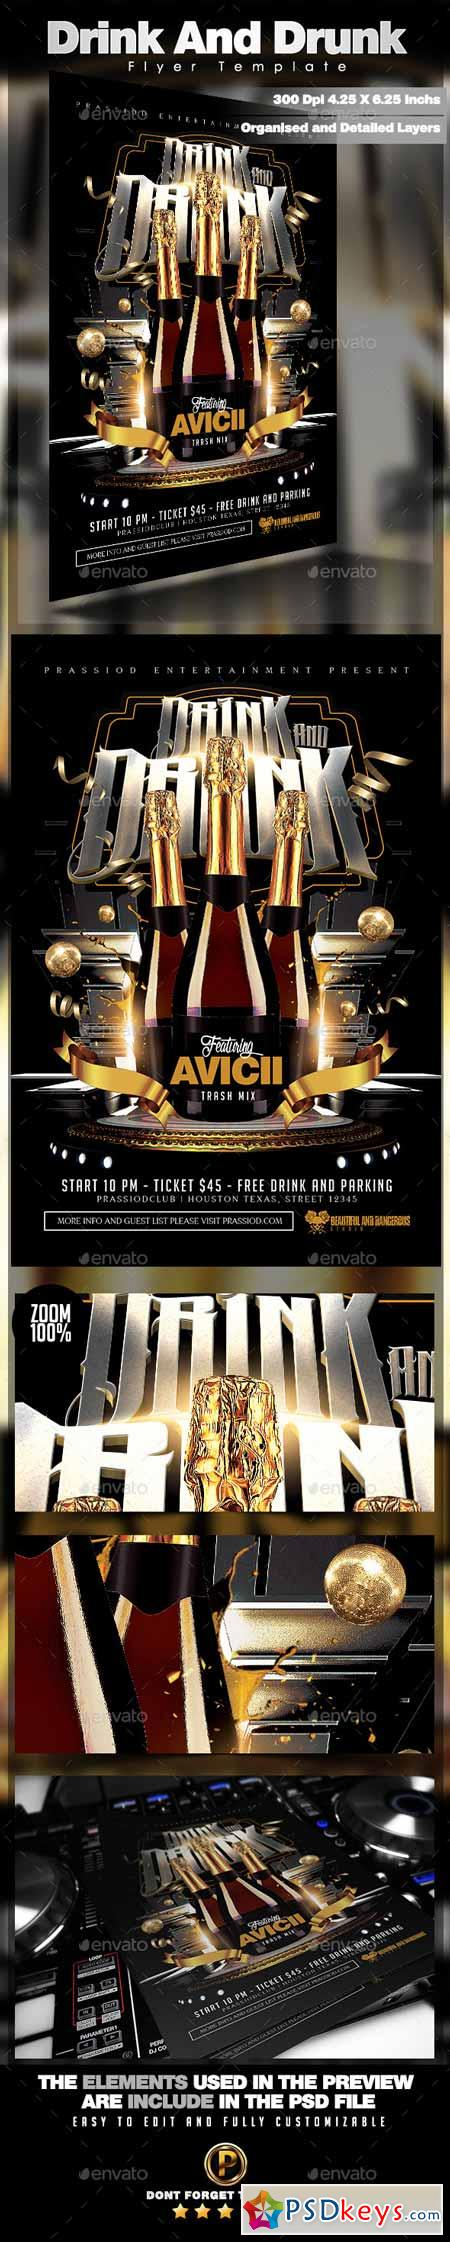 Drink And Drunk Flyer Template 10598353 Free Download Photoshop – Zombie Flyer Template